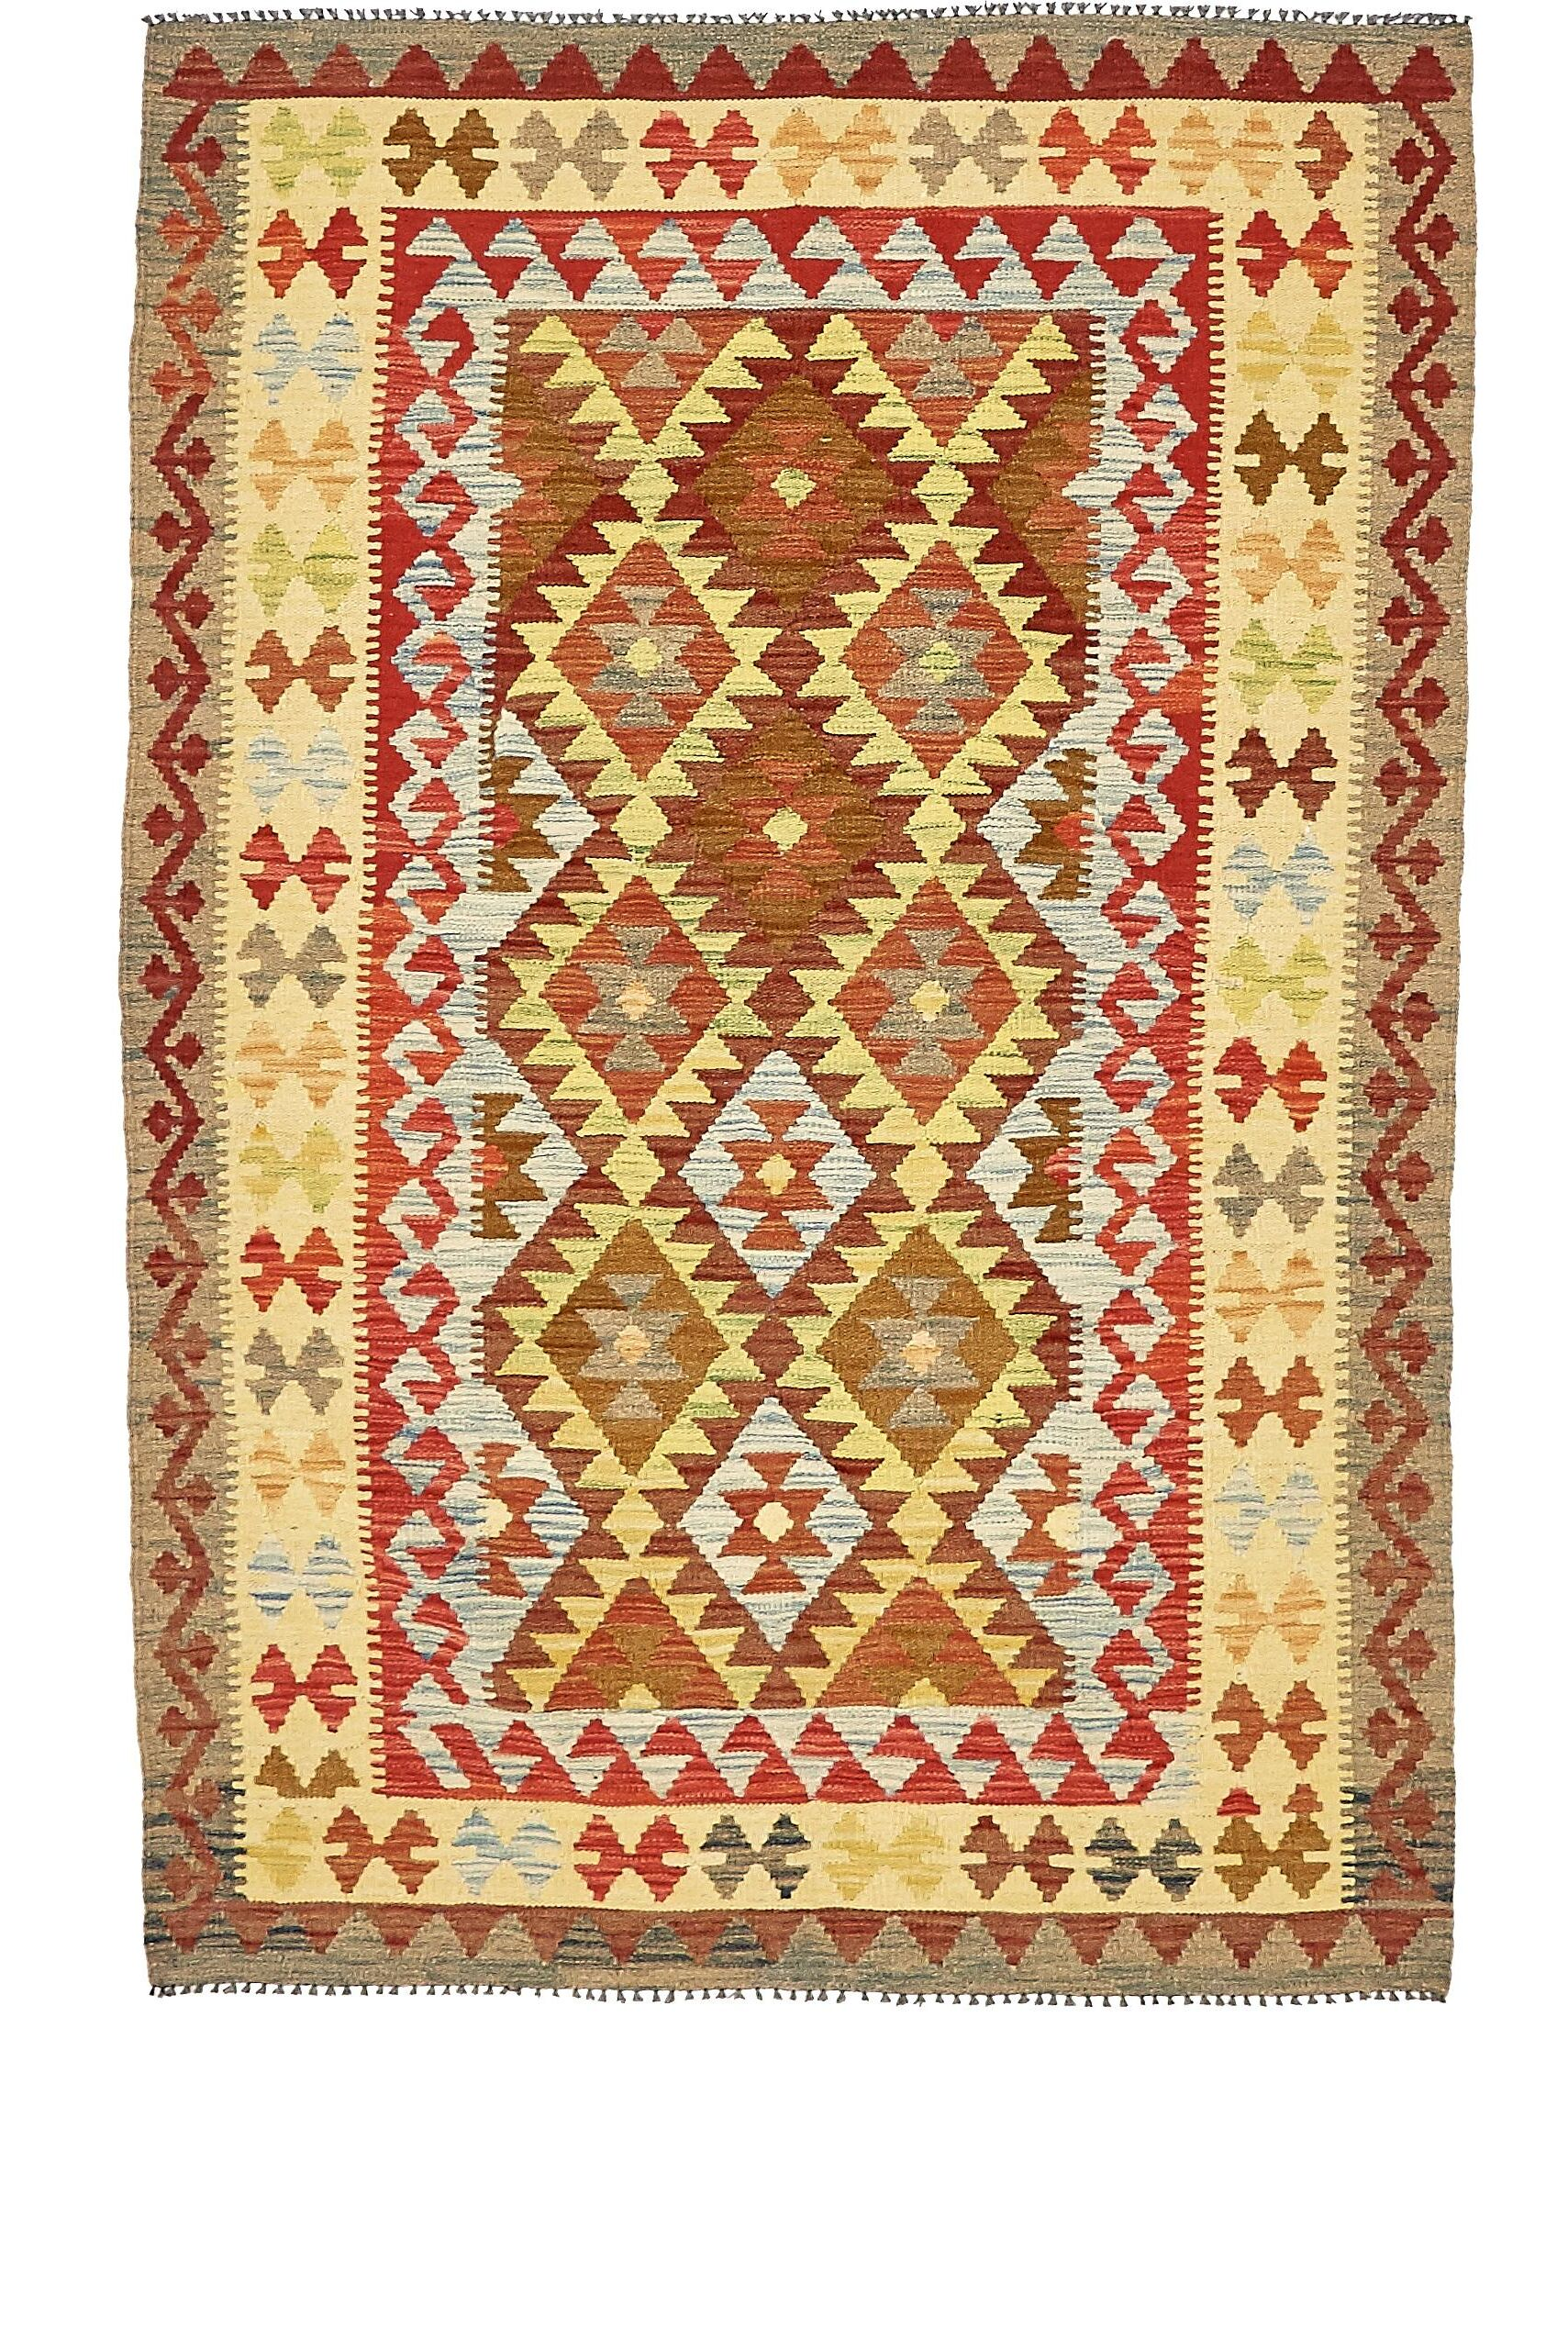 One-of-a-Kind Doorfield Hand-Knotted Wool 4' x 6' Brown/Beige/Green Area Rug